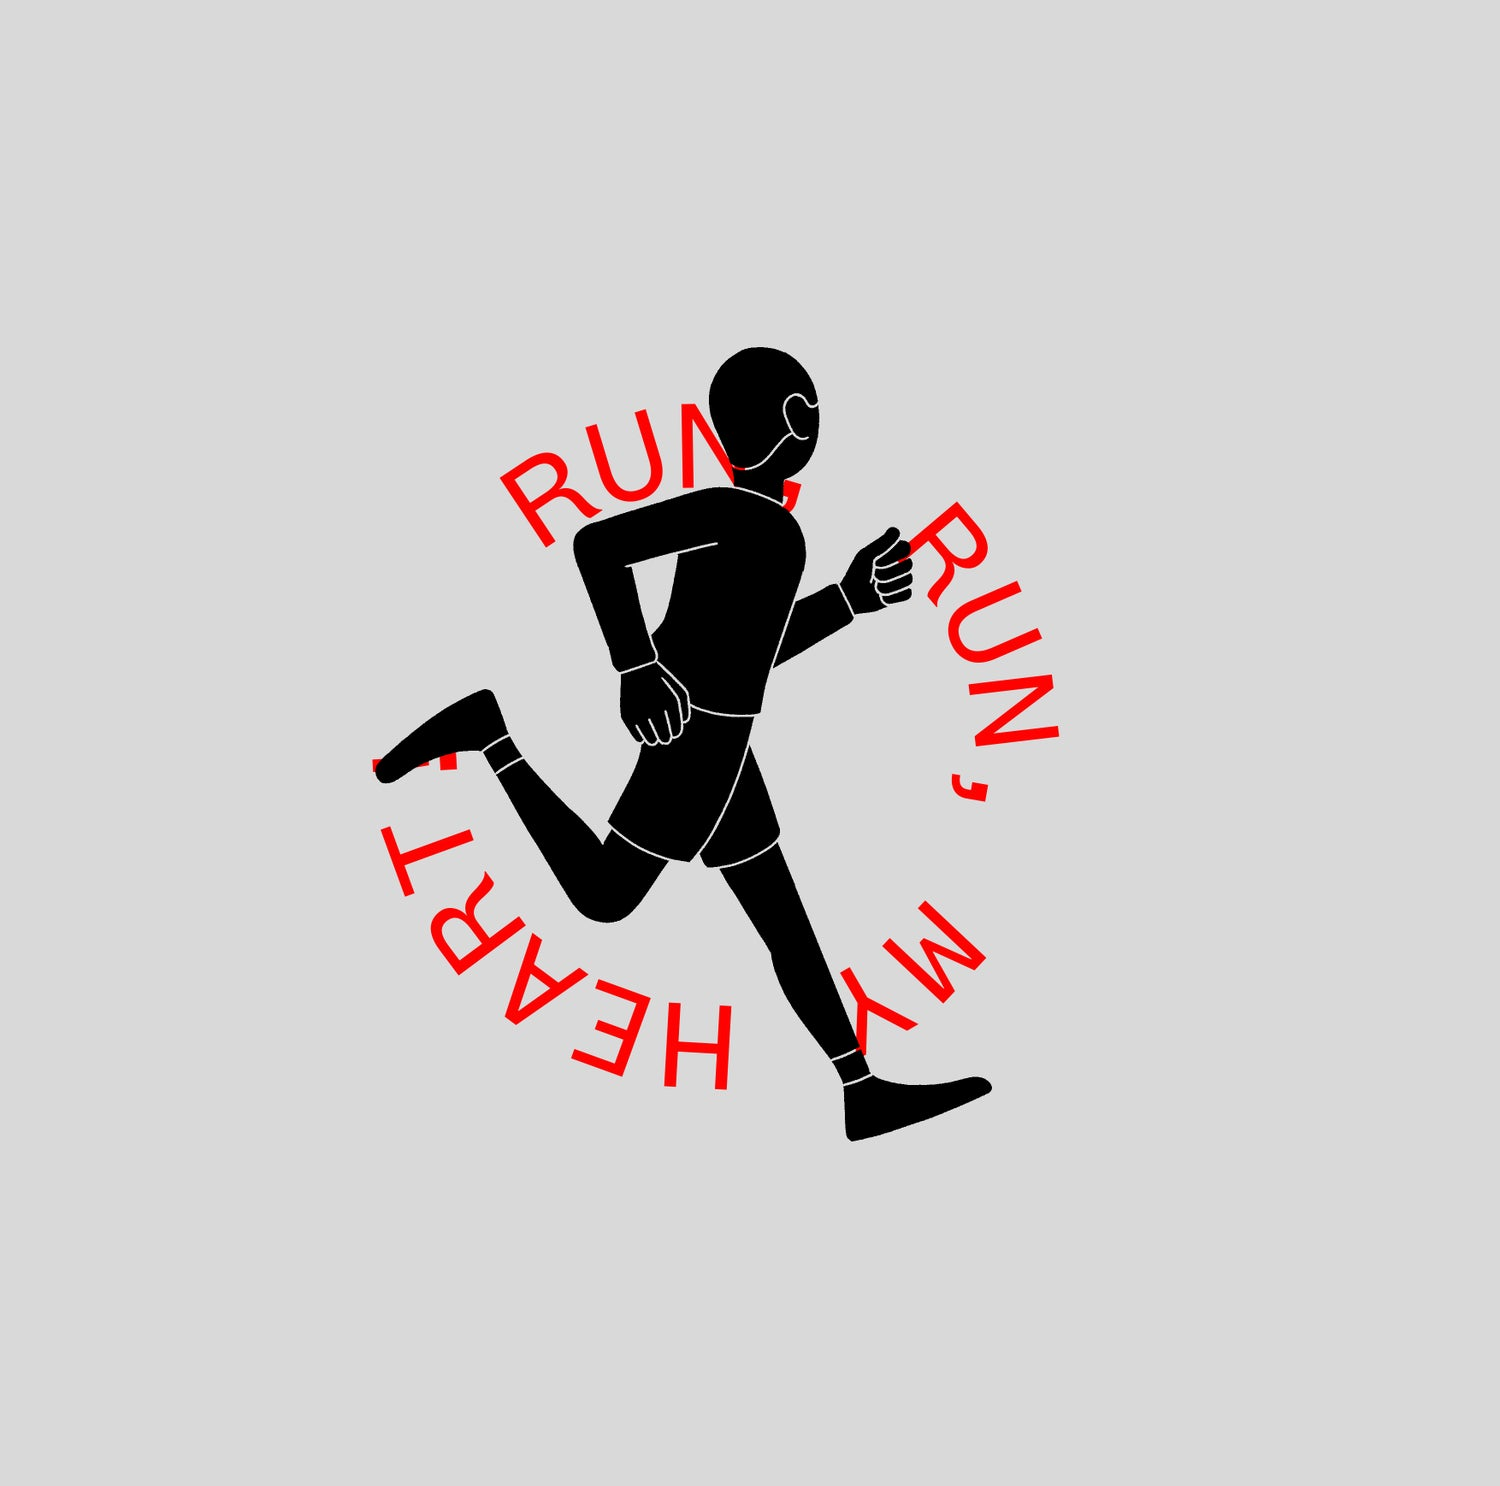 Image of Run, Run, My Heart